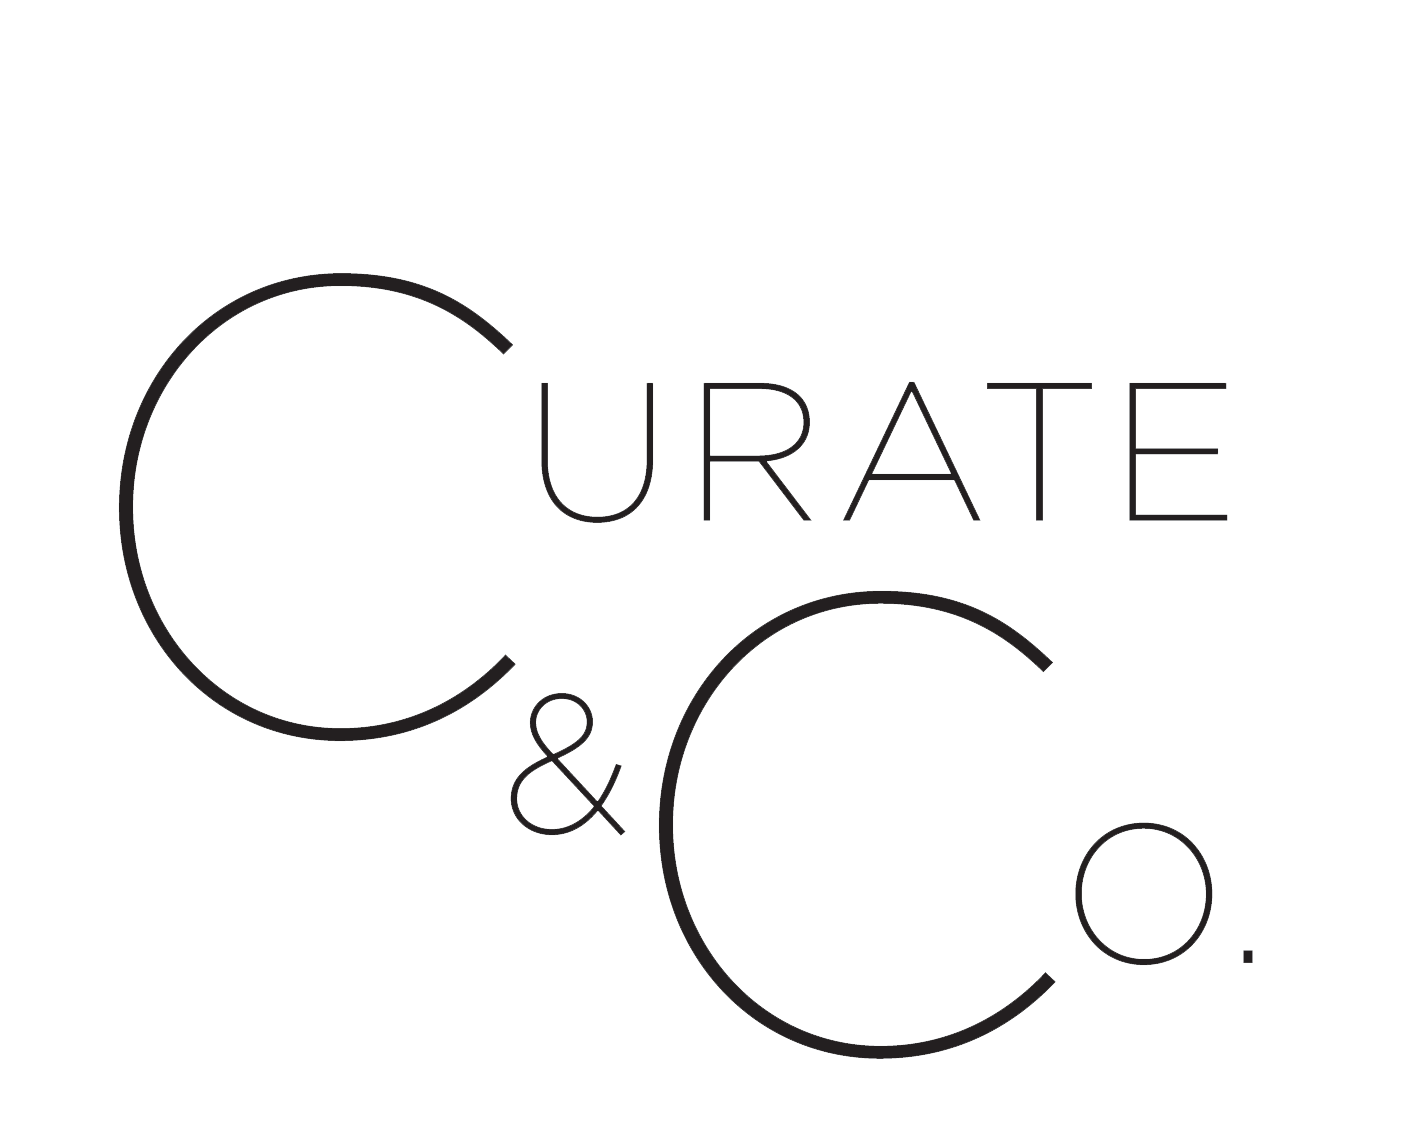 Curate and Co.